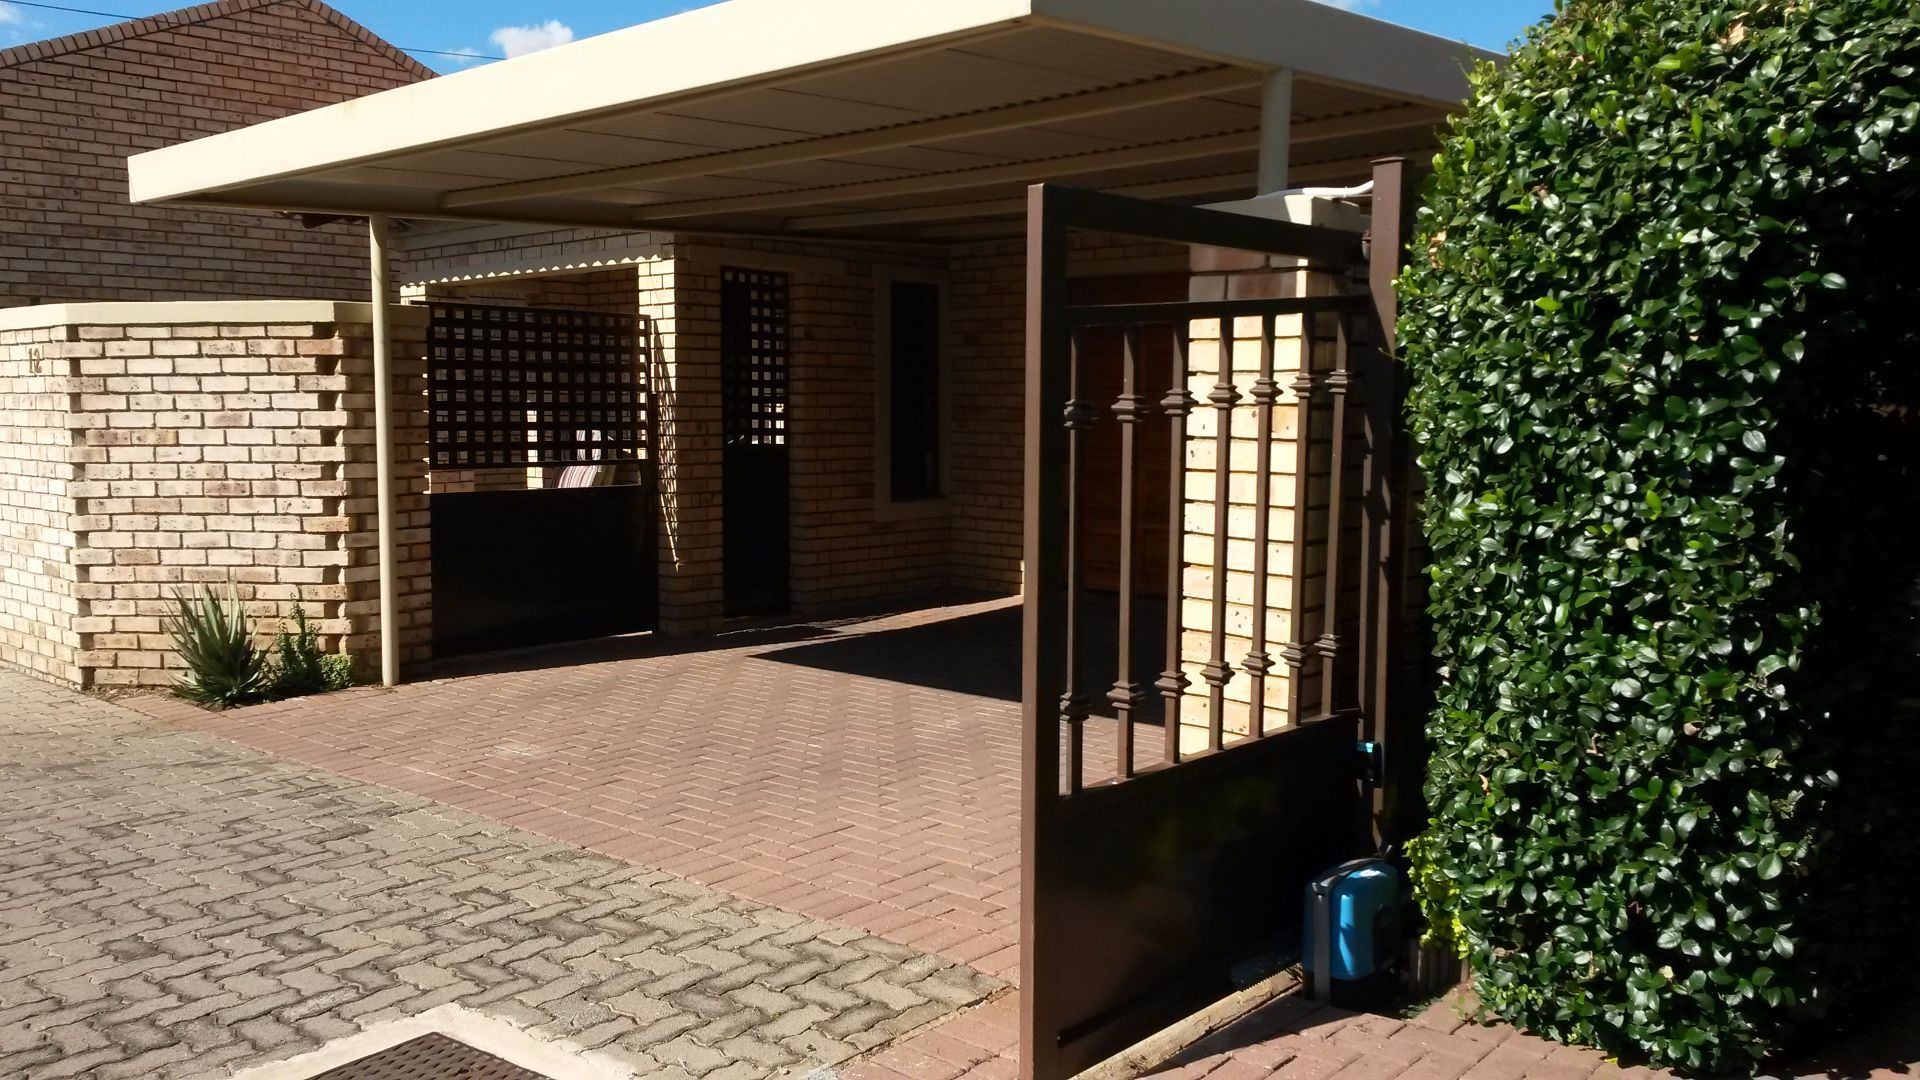 Potchefstroom Central property for sale. Ref No: 13463328. Picture no 1